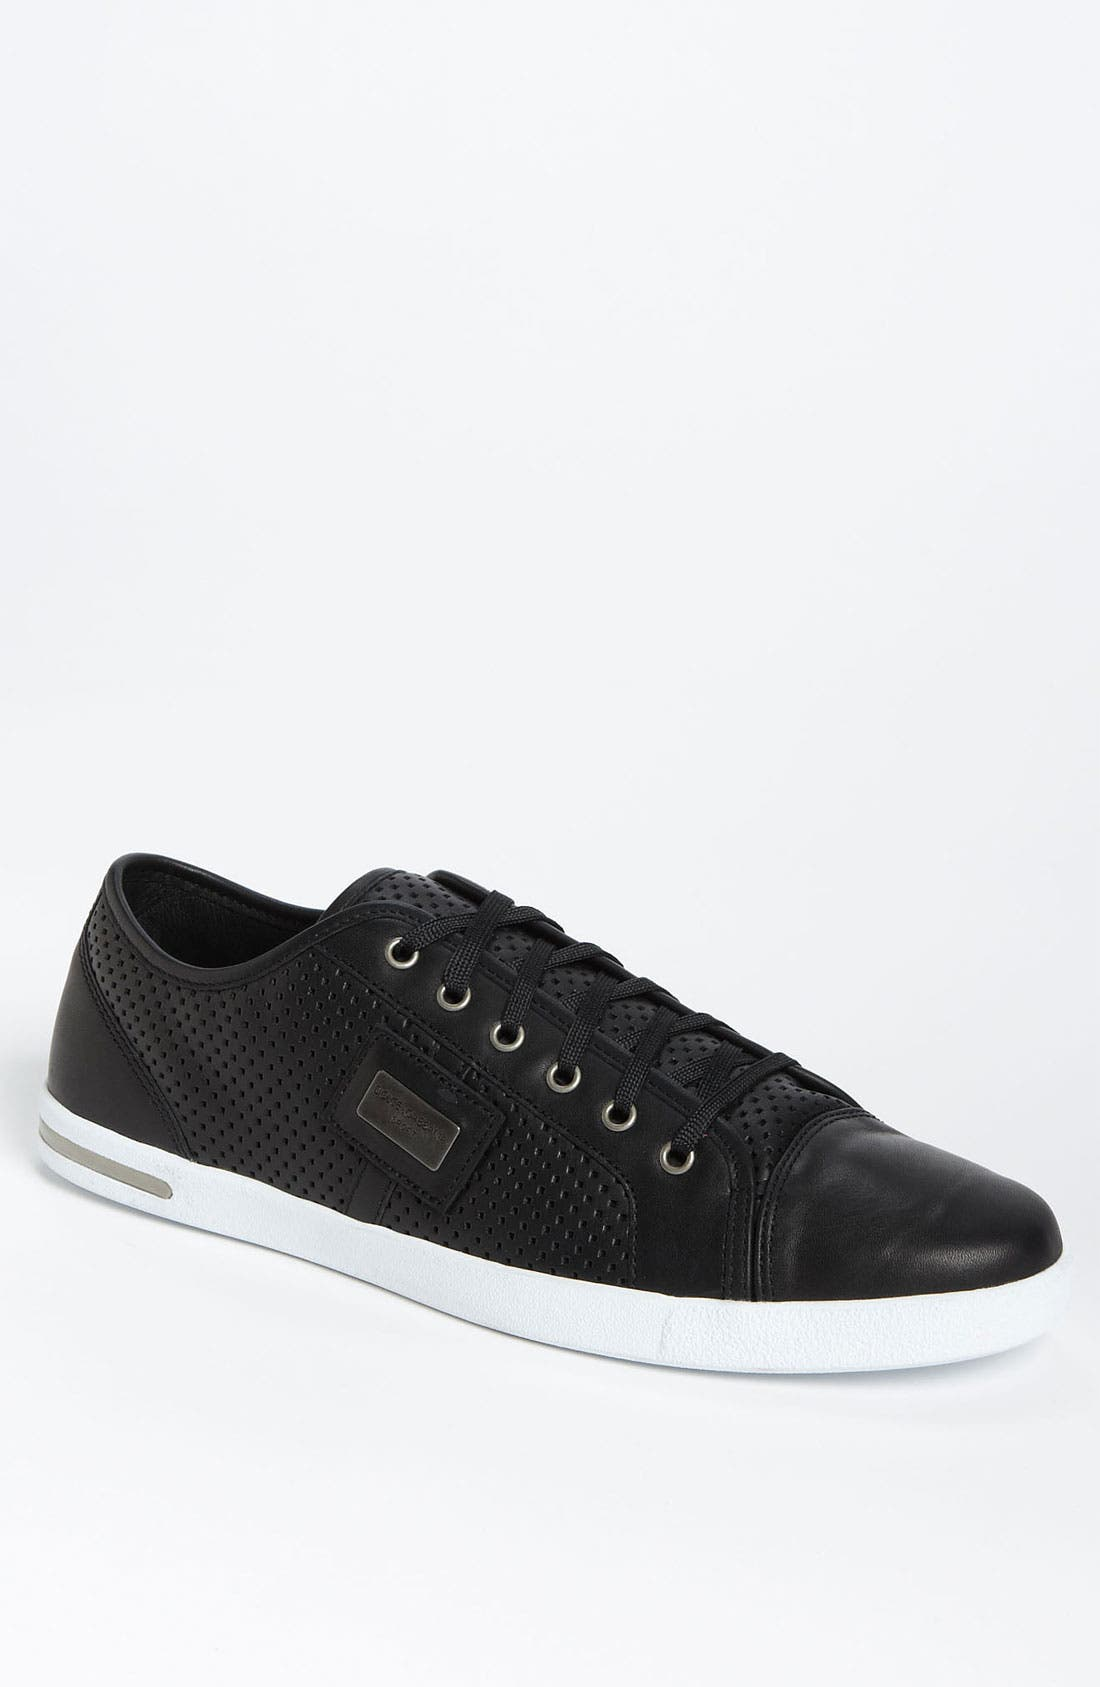 Alternate Image 1 Selected - Dolce&Gabbana Perforated Sneaker